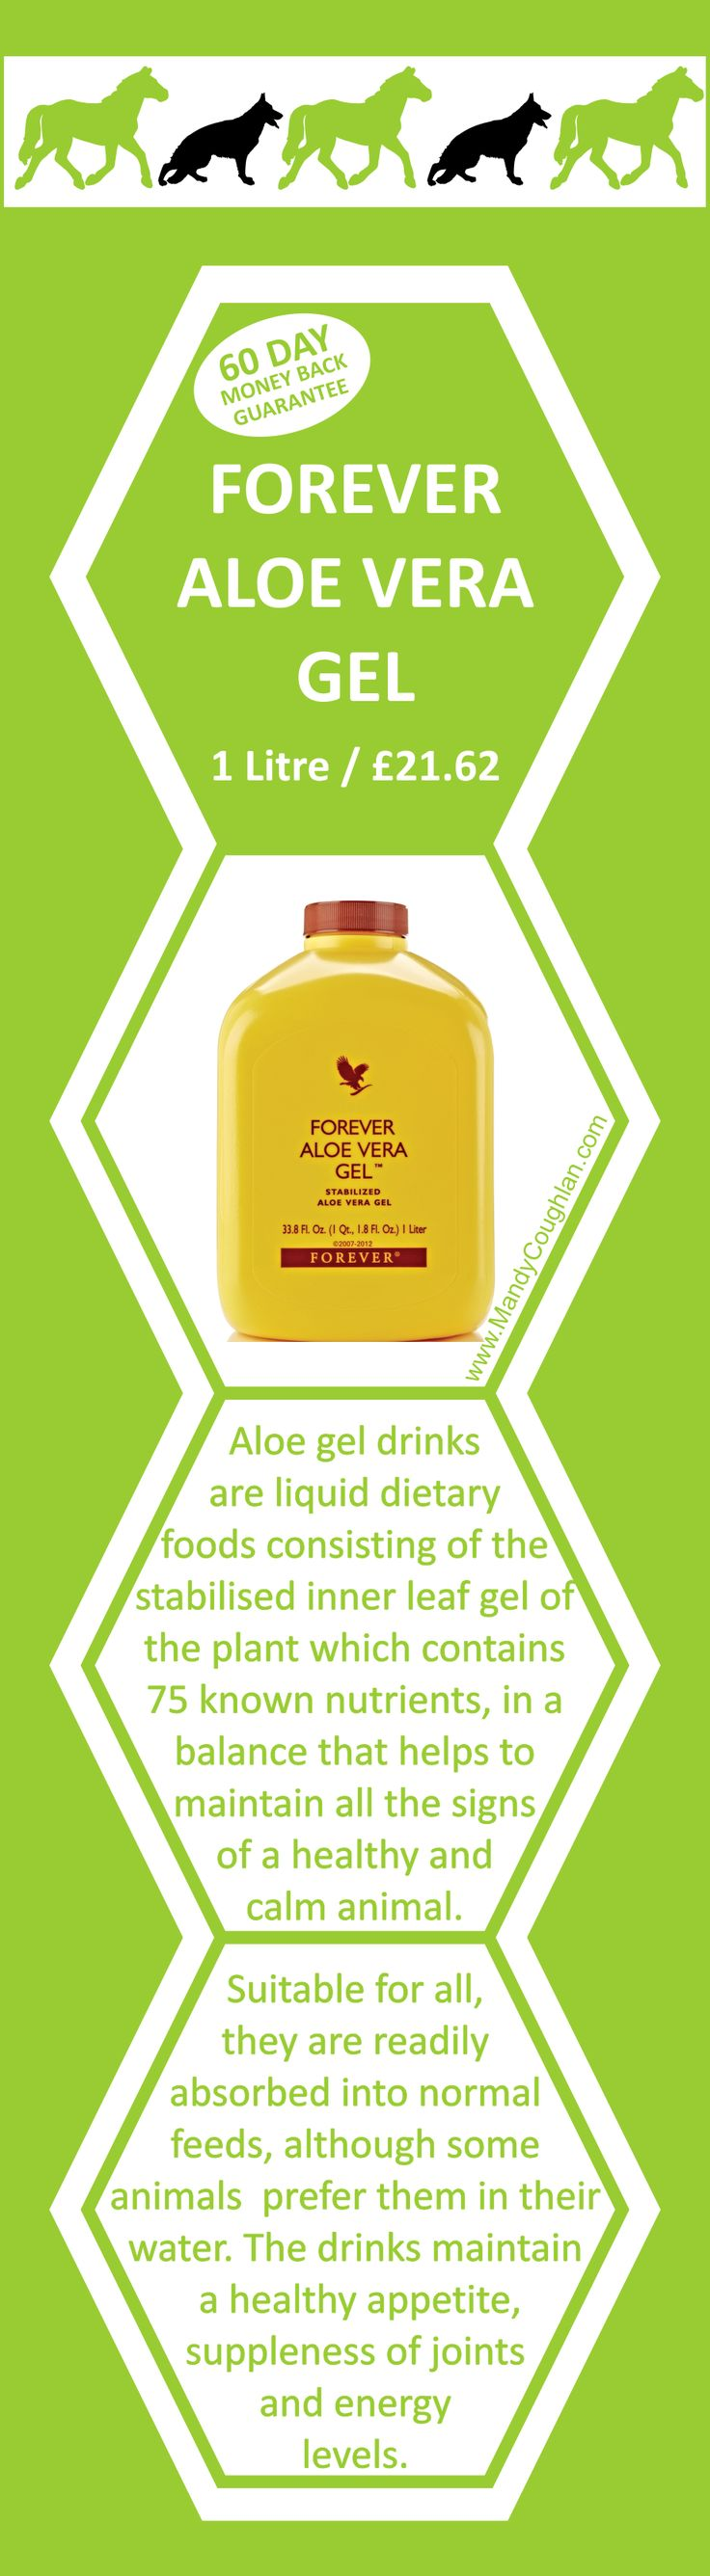 Aloe Vera Gel, 1 Litre for £21.62. Email Mandy@MandyCoughlan.com or order online at https://www.foreverliving.com/retail/entry/Shop.do?store=GBR&language=en&distribID=440500006105&itemCode=015 #aloe #health #forever #digestion #skin #animals